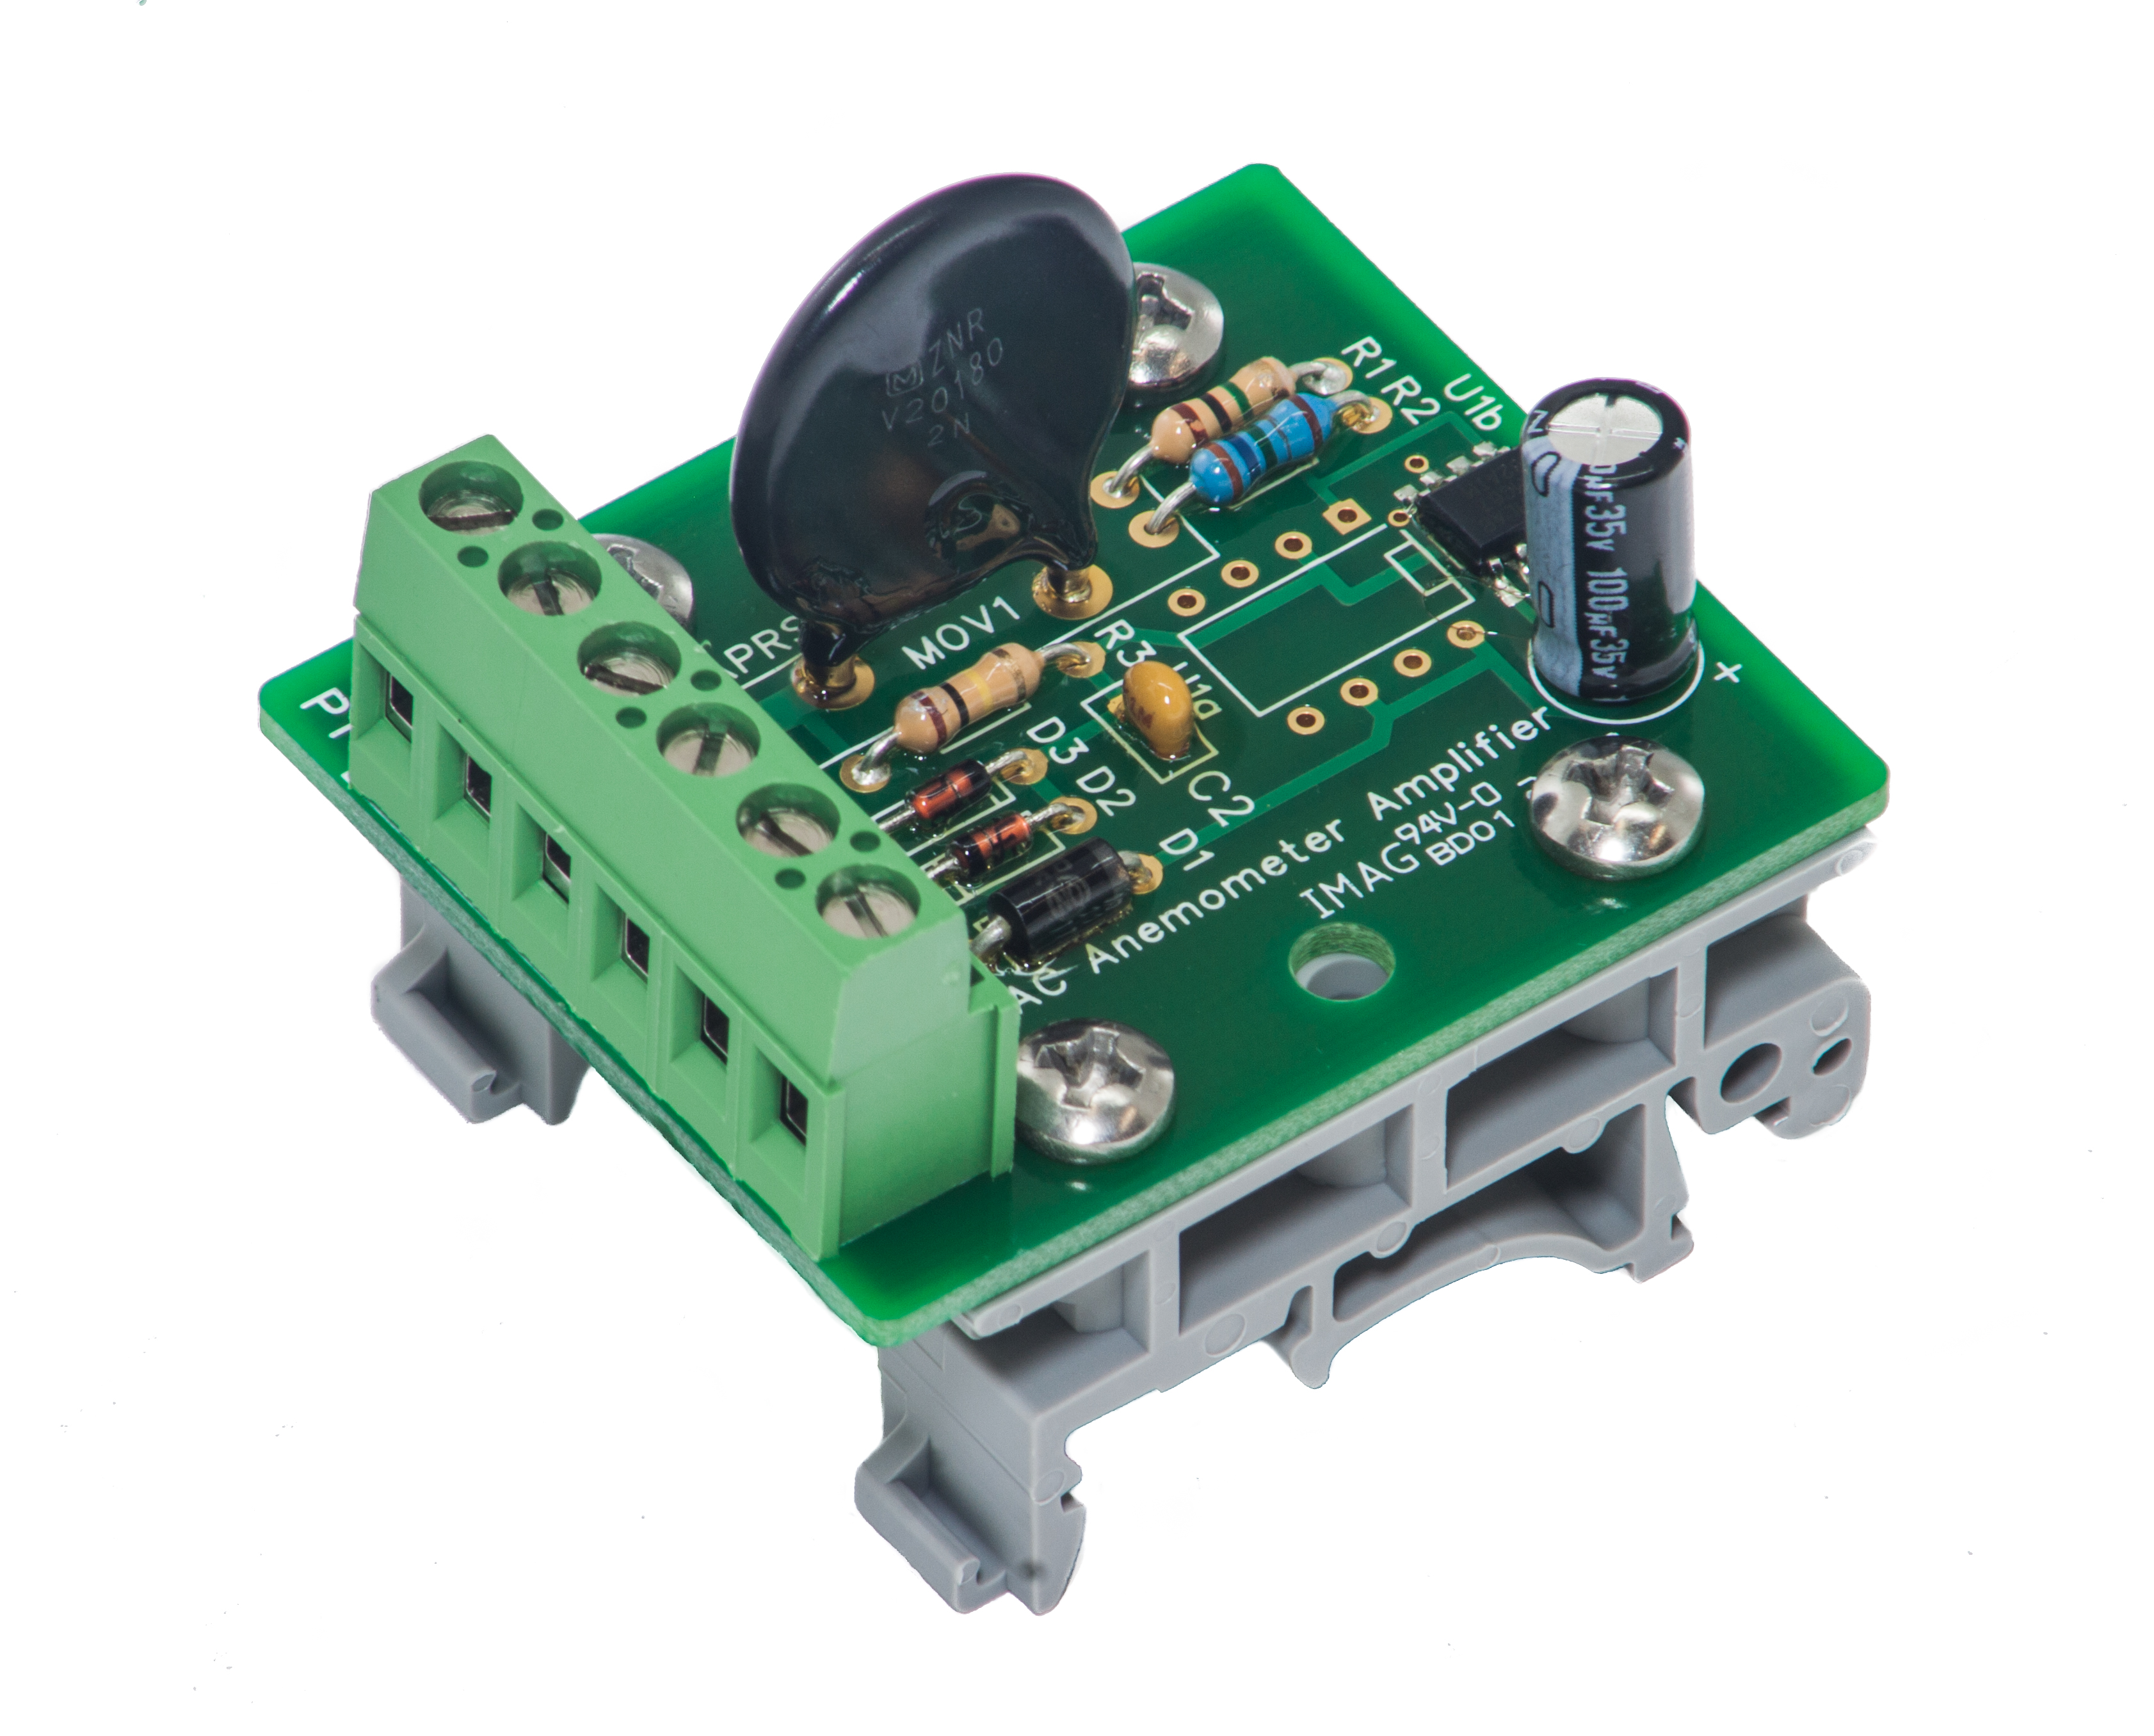 hight resolution of aprs6511 ac anemometer amplifier board view full size view slideshow